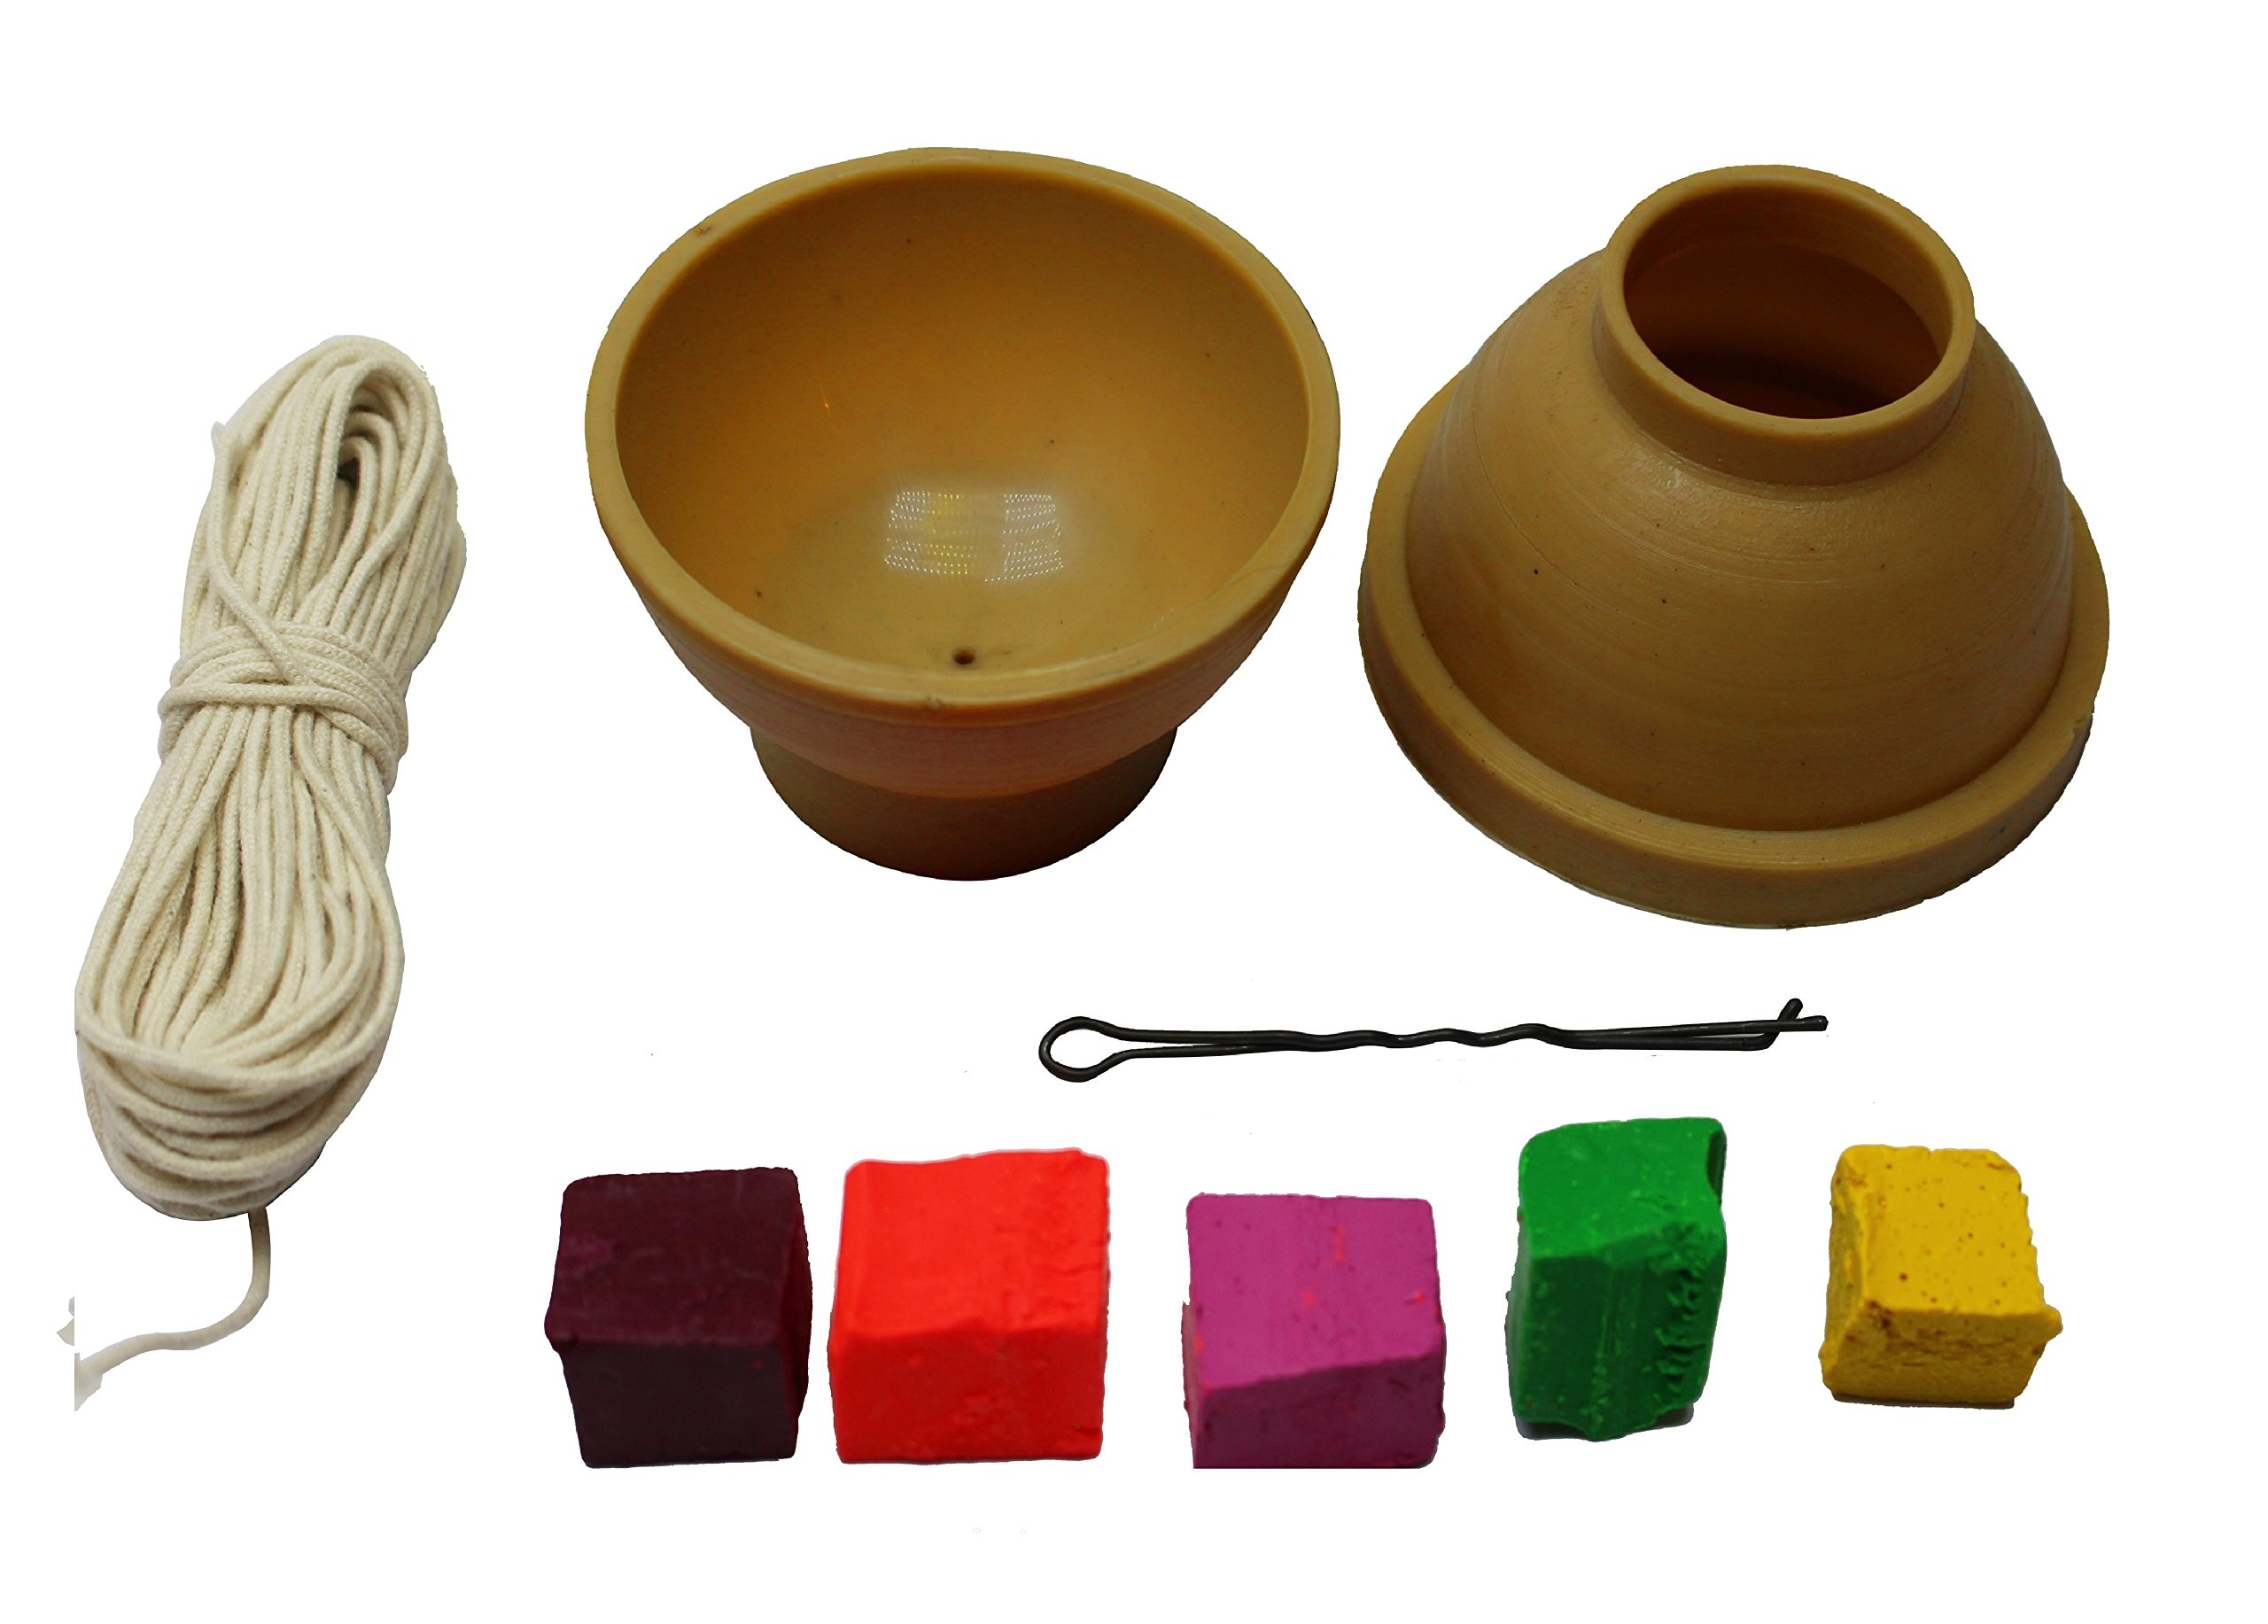 Mini set - Candle dye 5 color and Candle mold make candles at home